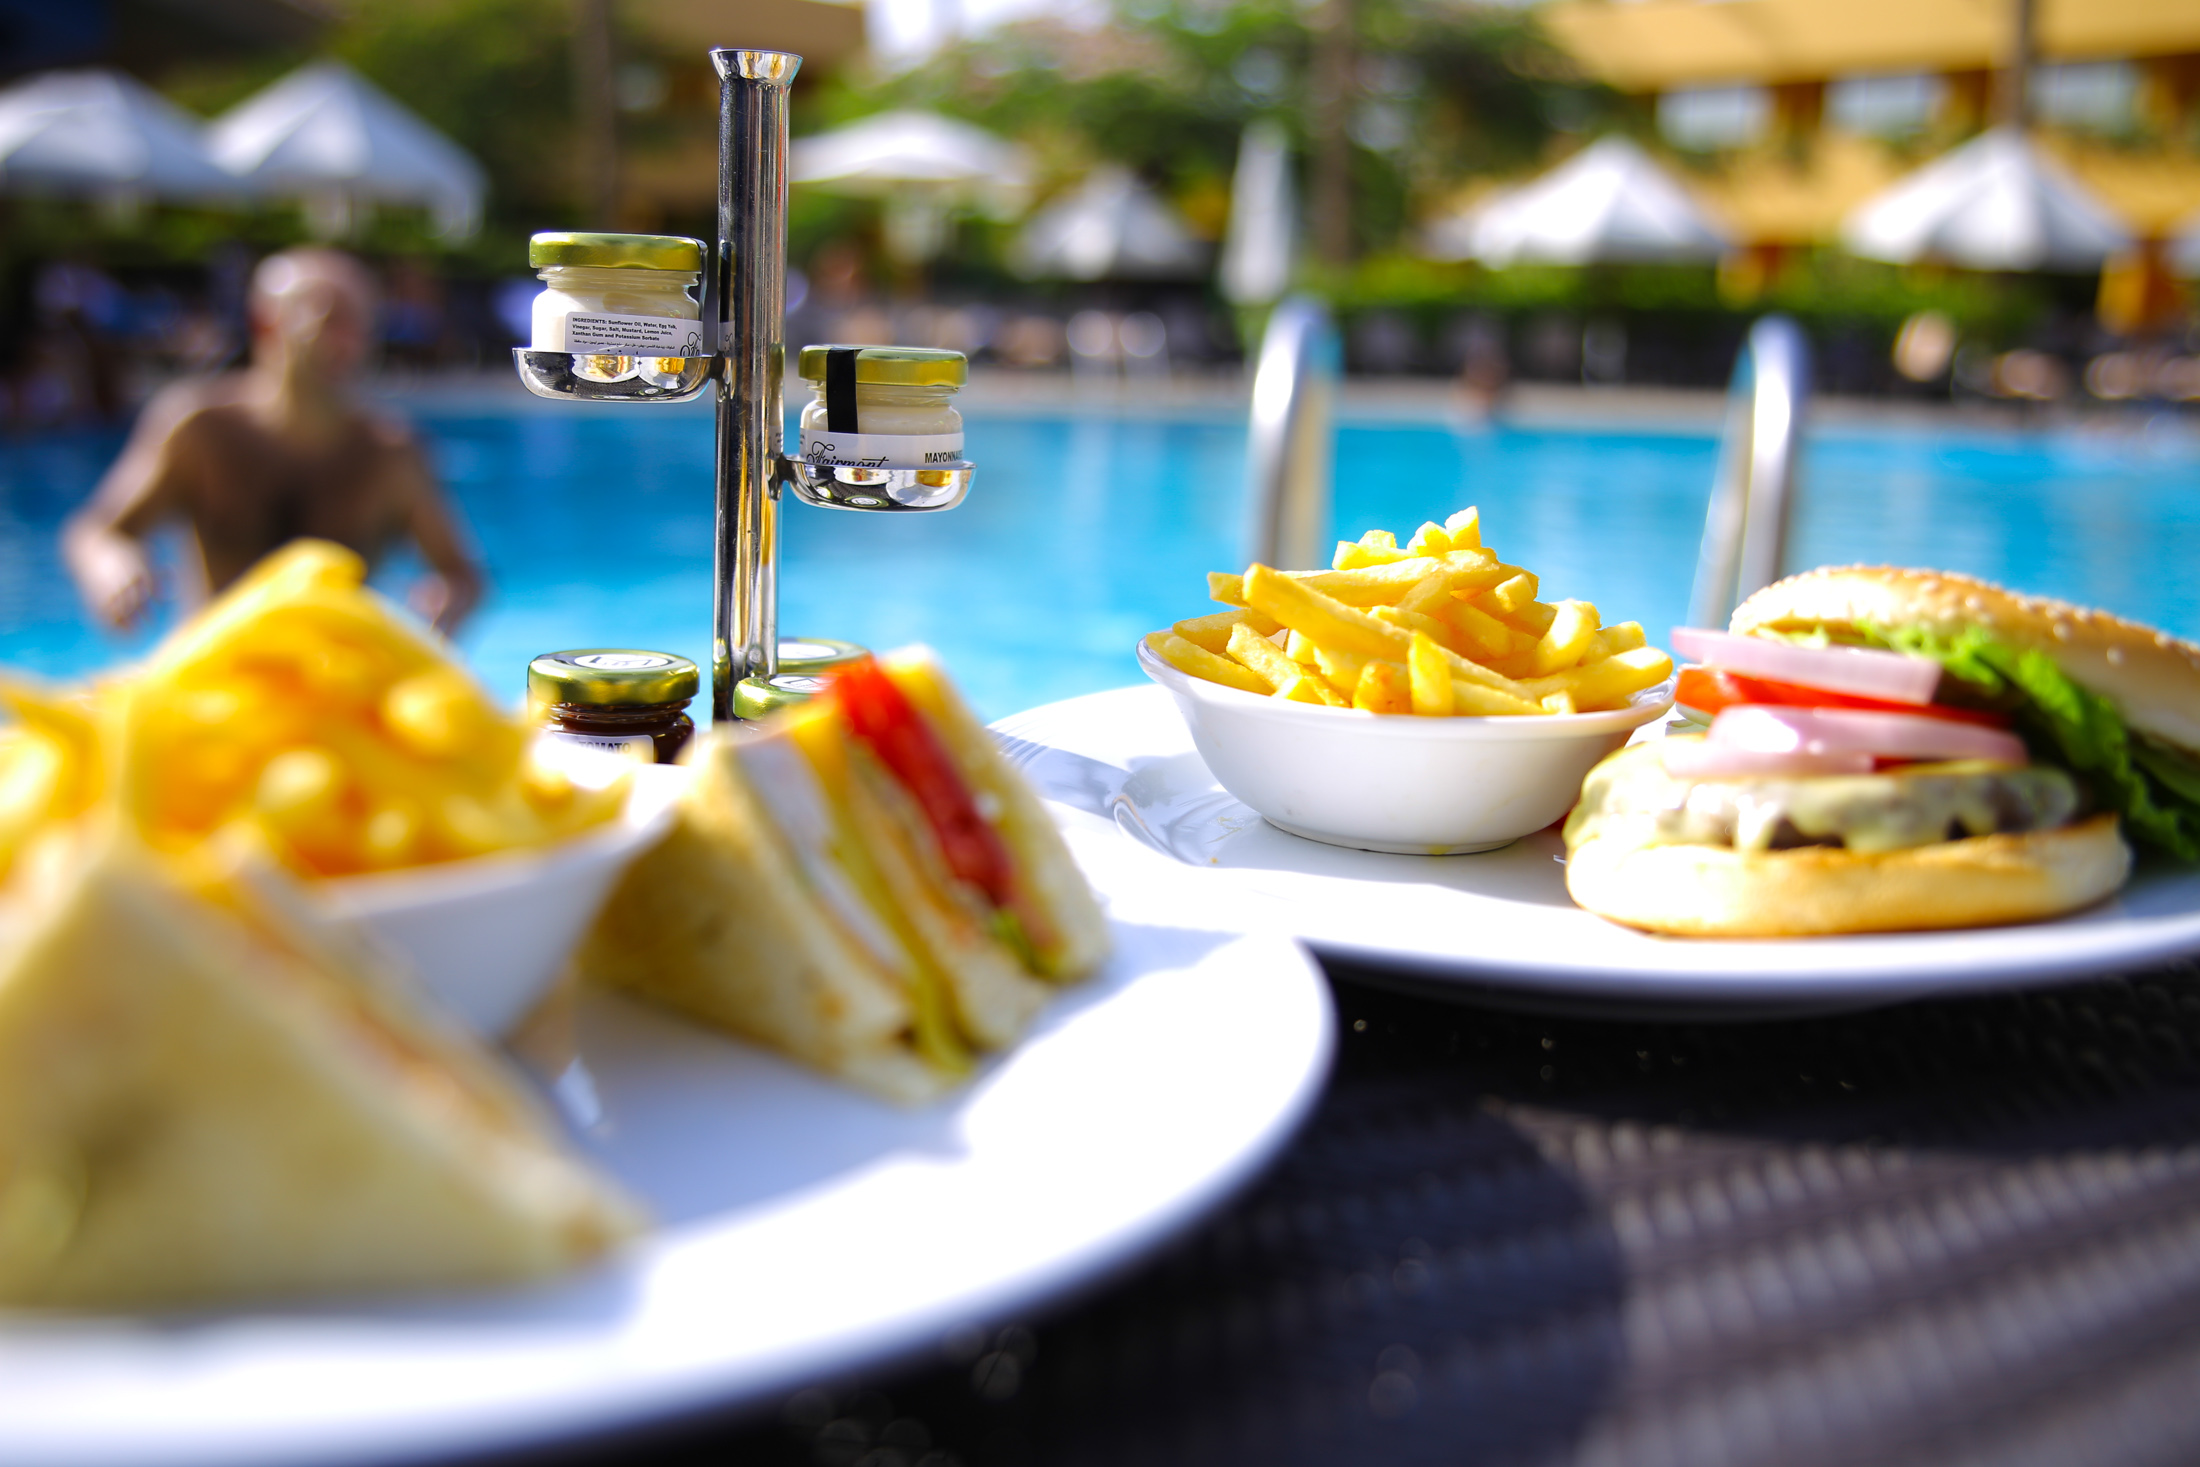 Swim. Eat. Relax - Enjoy a cool drink by the pool or order dinner for the family.